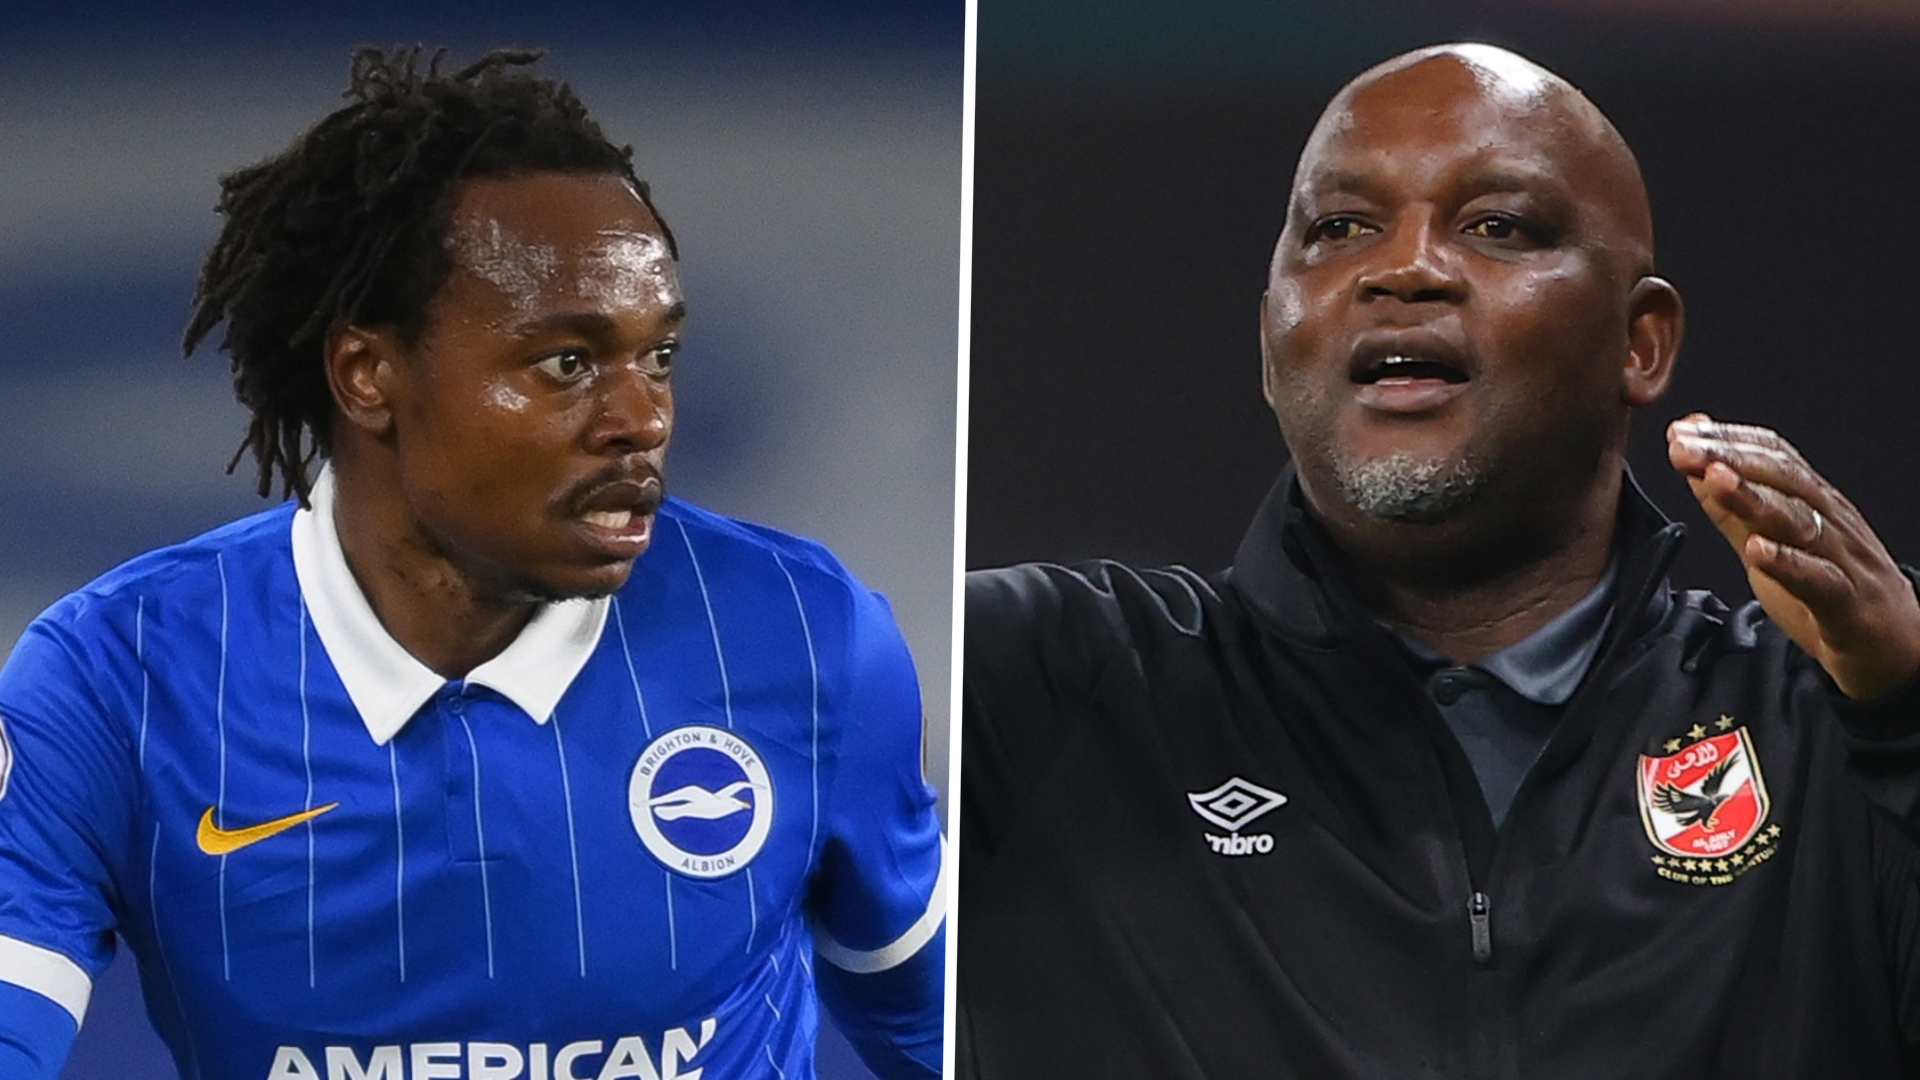 Tau is like Messi, he must come to Al Ahly and show he is king of the jungle - Mosimane